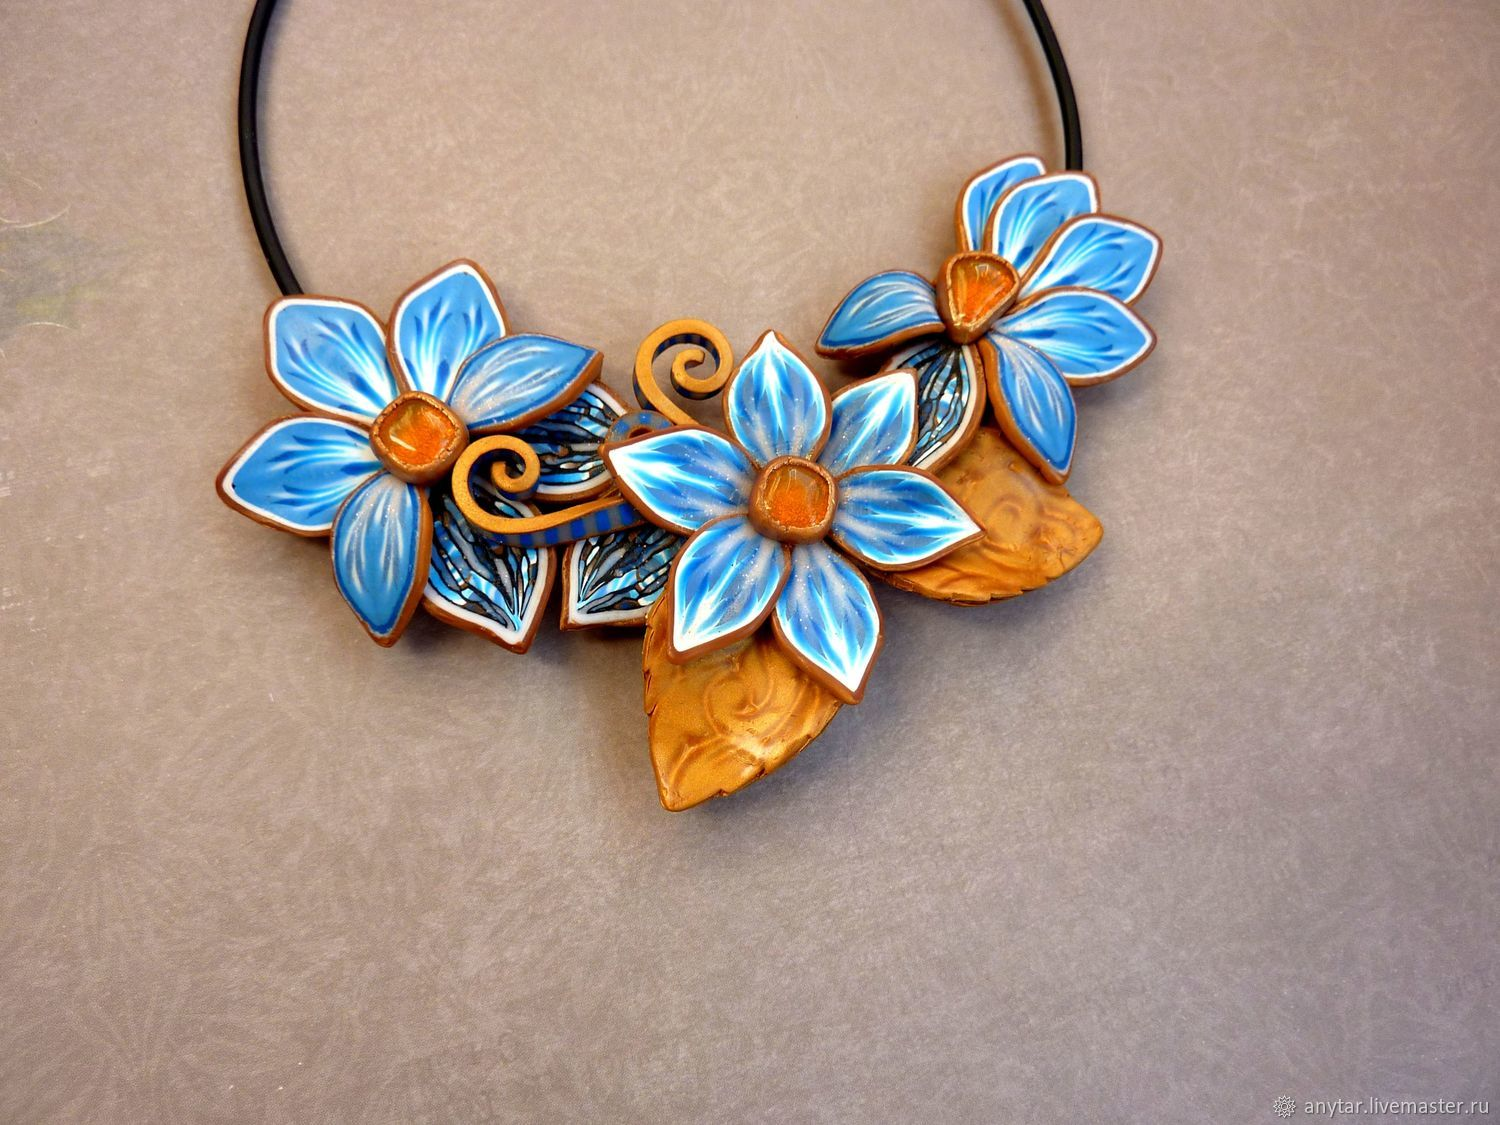 A beautiful pendant made of polymer clay will be an excellent decoration or souvenir for memory